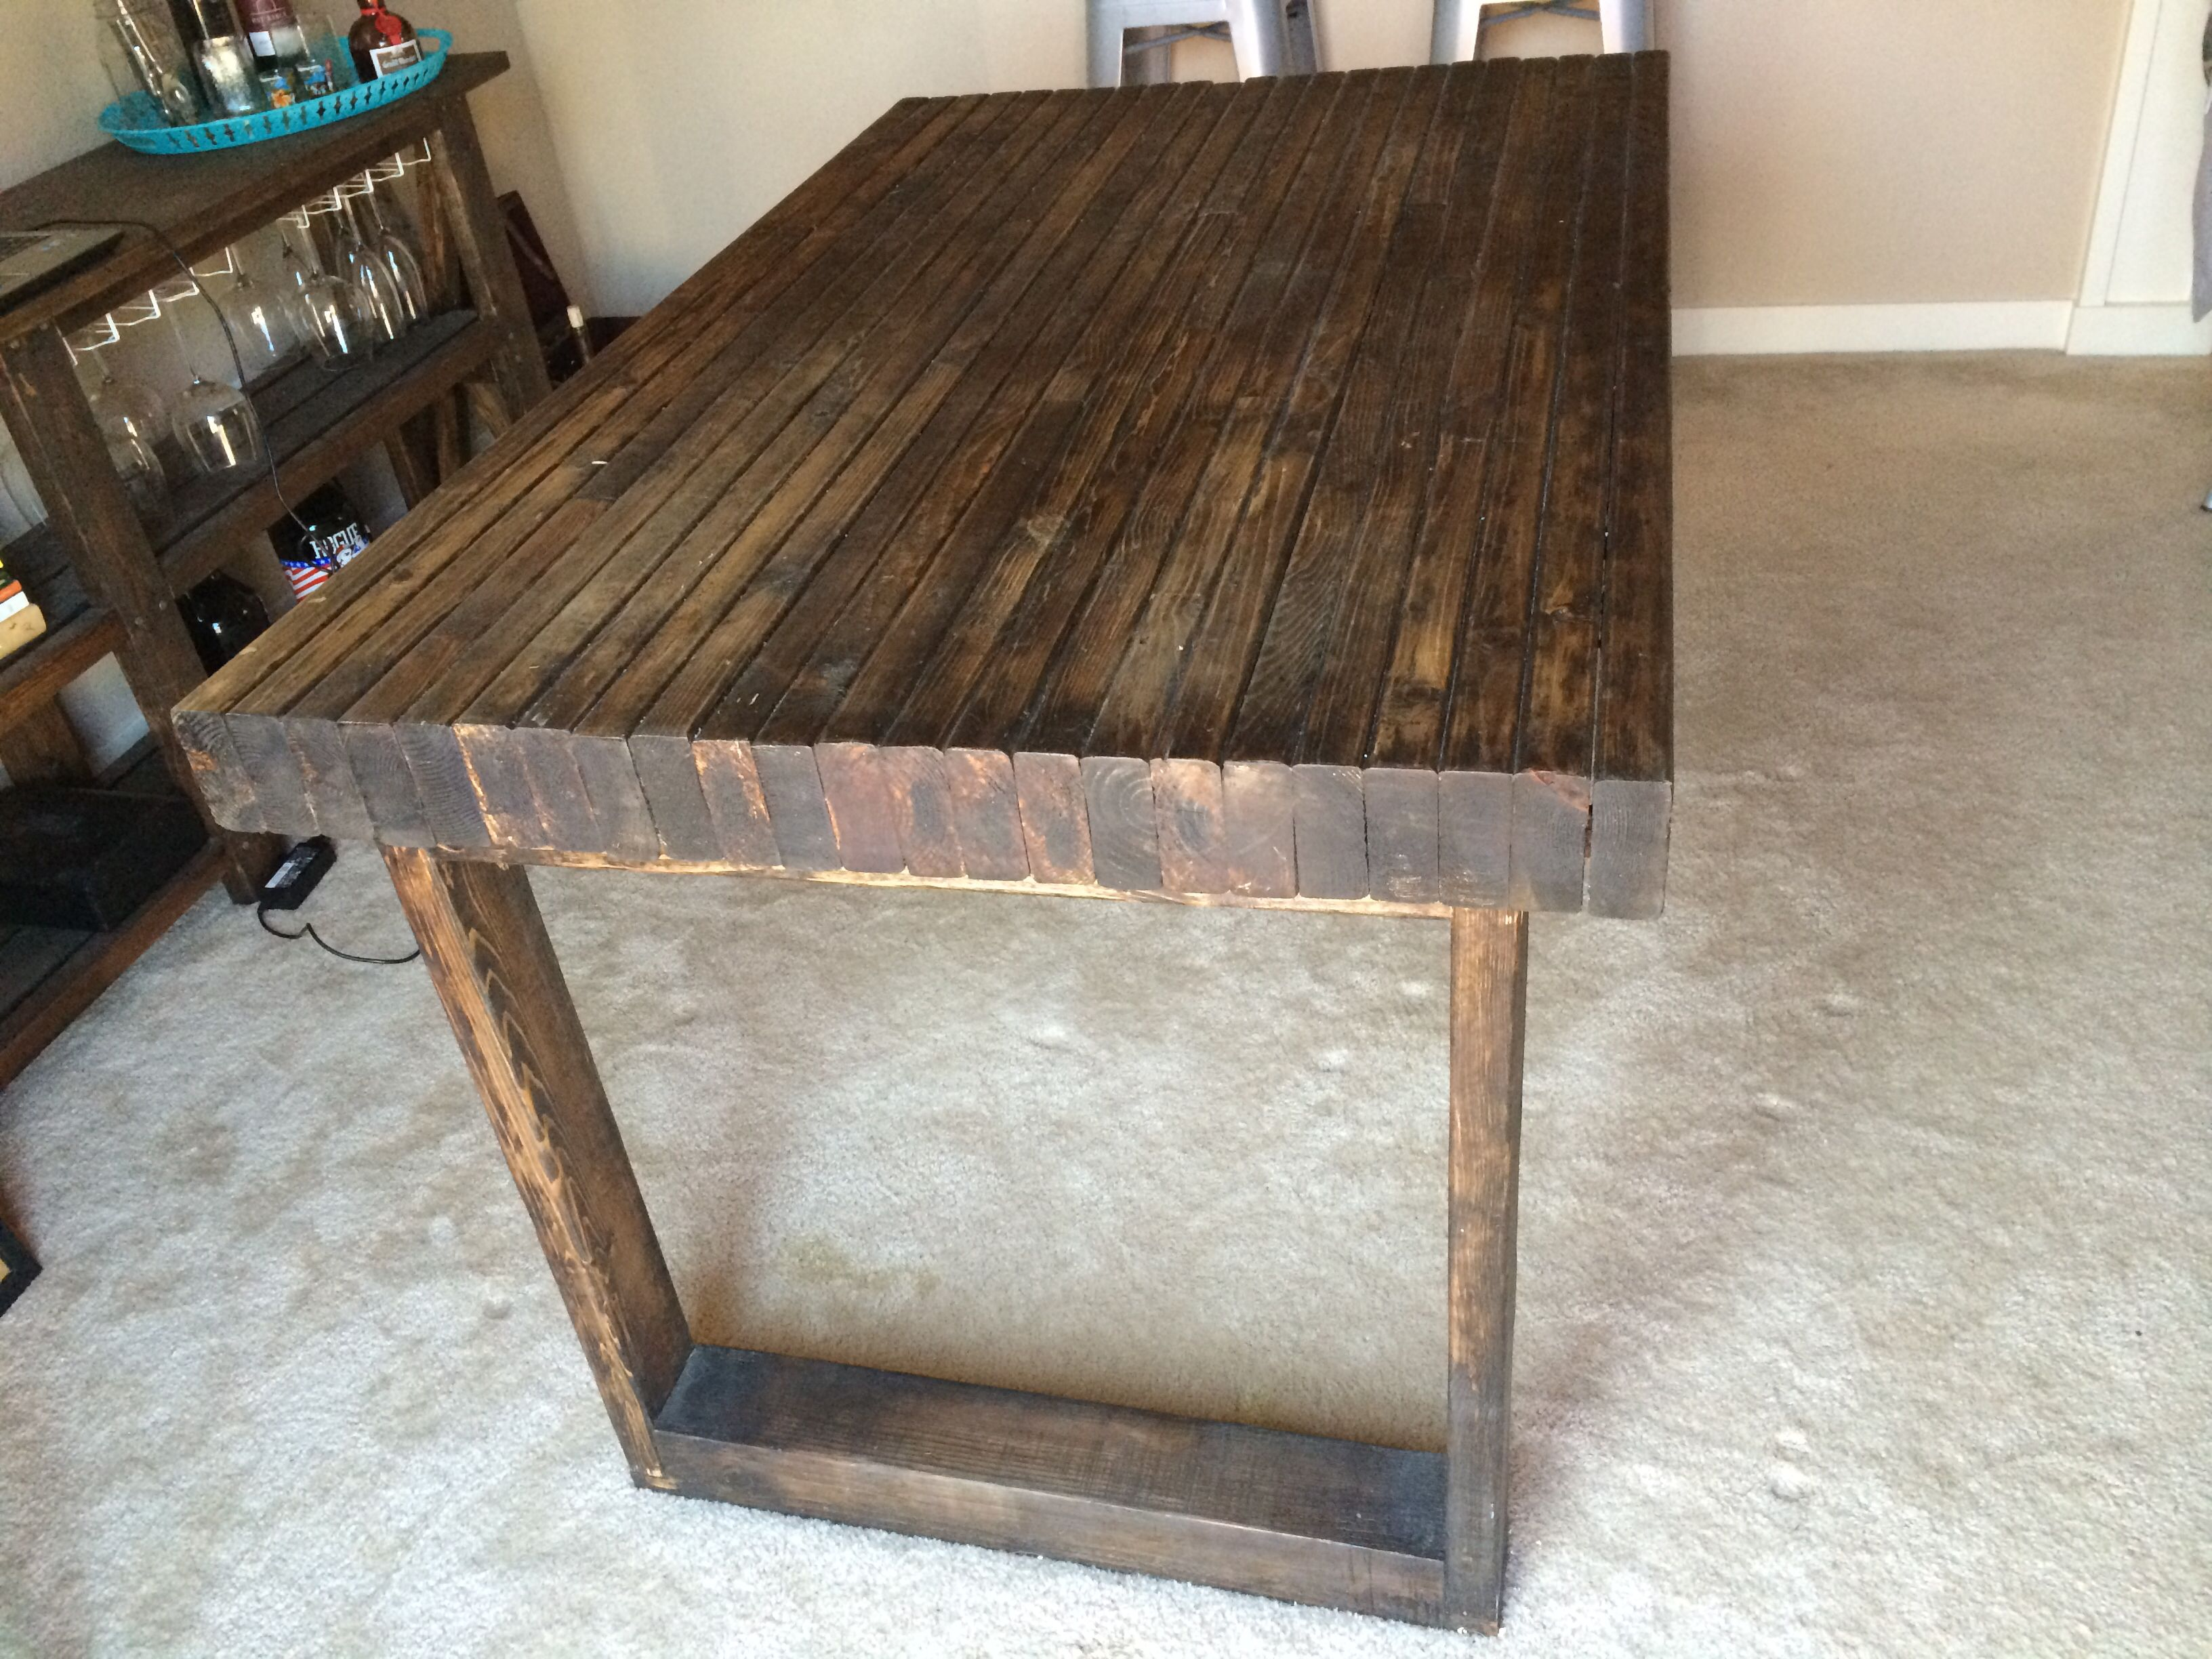 repurposed 2x4 kitchen table for the wife and i repurposed 2x4 kitchen table for the wife and i   home design      rh   pinterest com